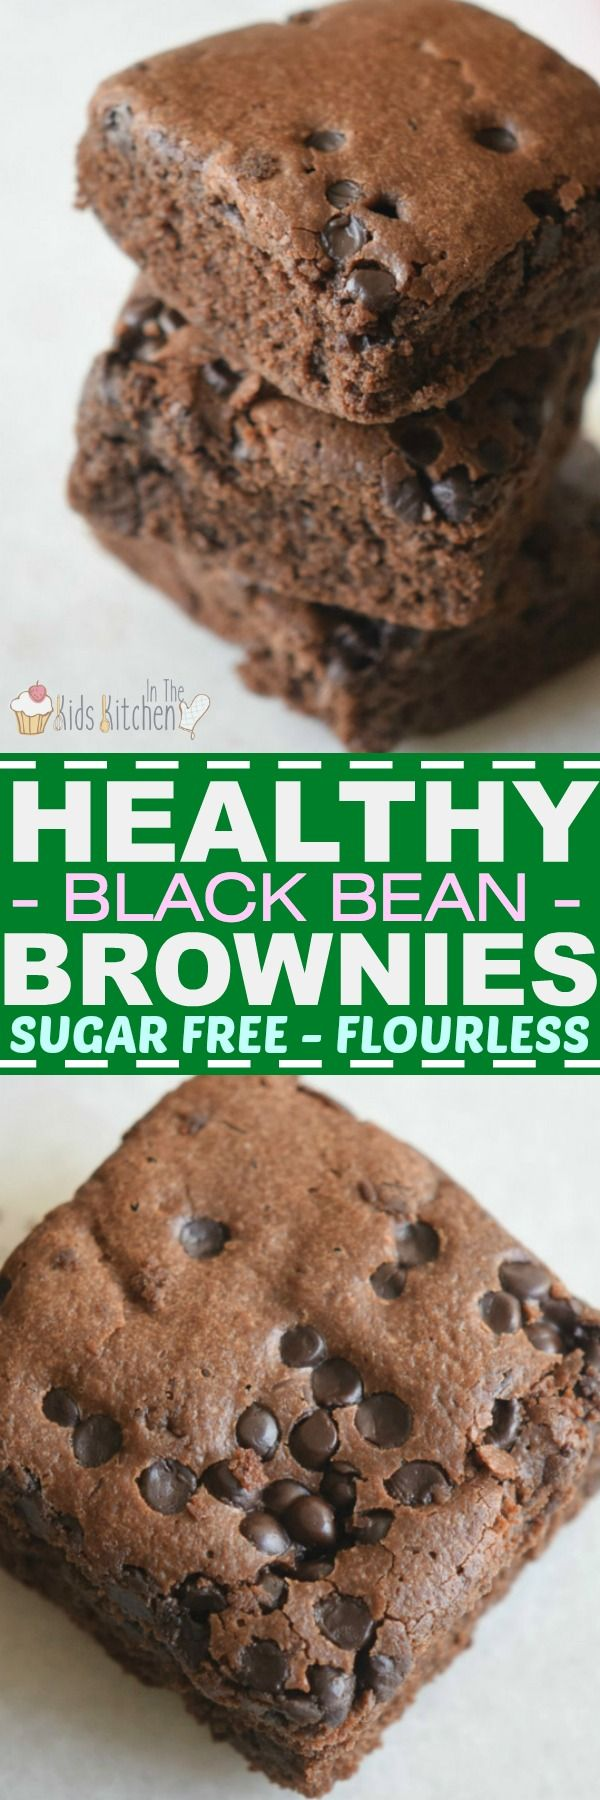 Brownies healthy enough to eat for breakfast?? Sugar free, whole food Black Bean Brownies are out-of-this-world fudge-y and decadent, but good for you too!